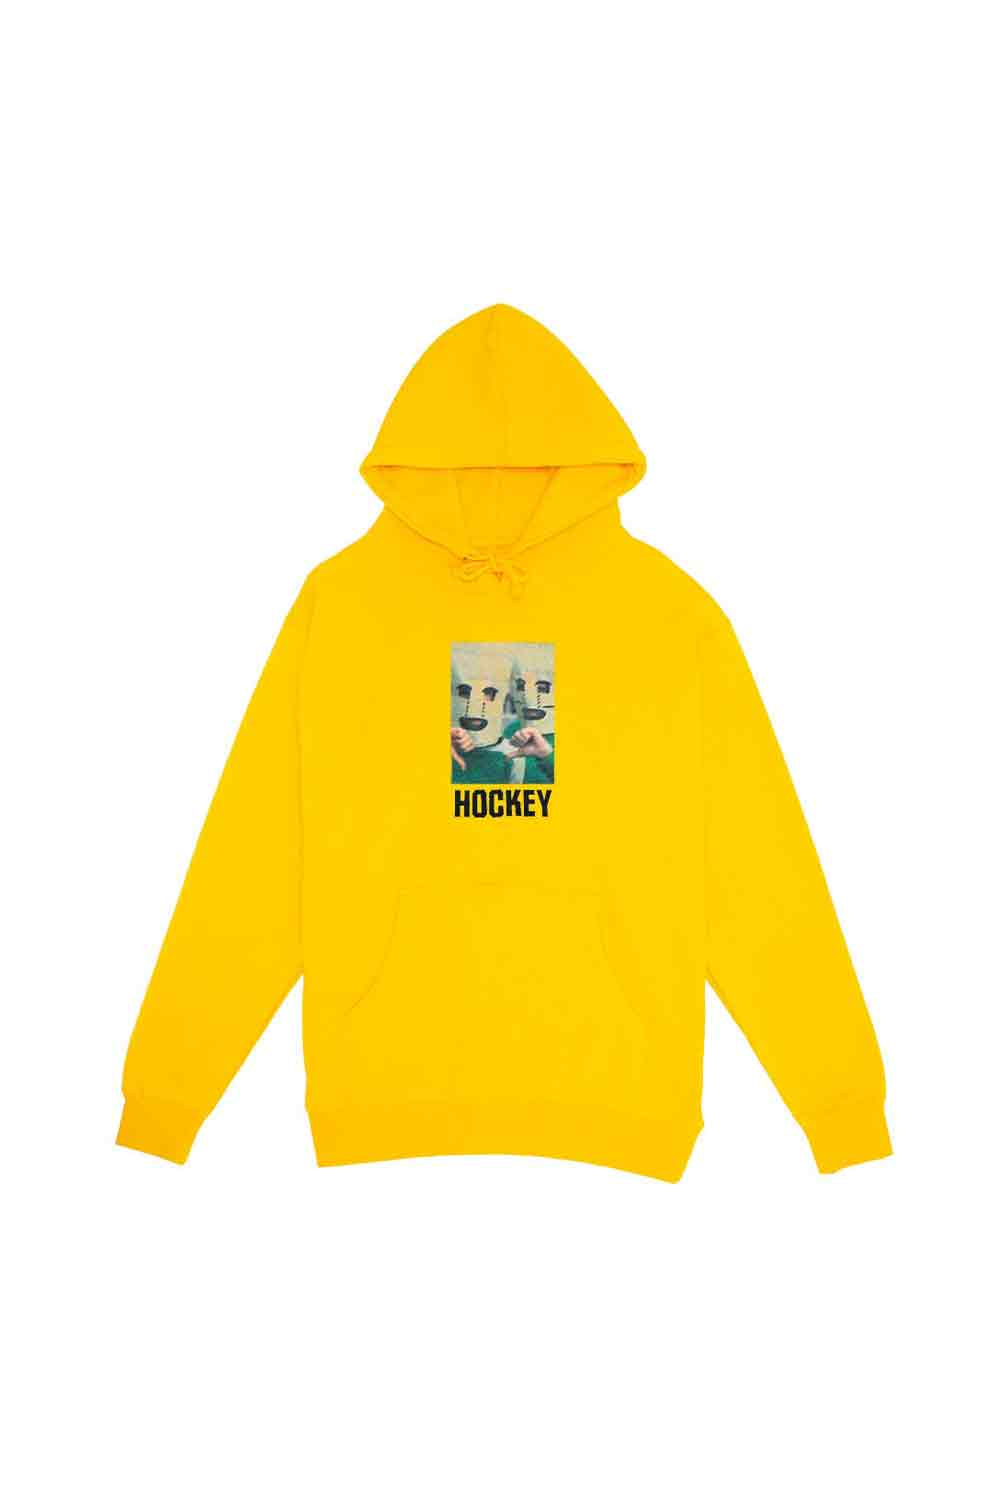 Hockey Baghead Hoodie Gold | Hockey Clothing Online